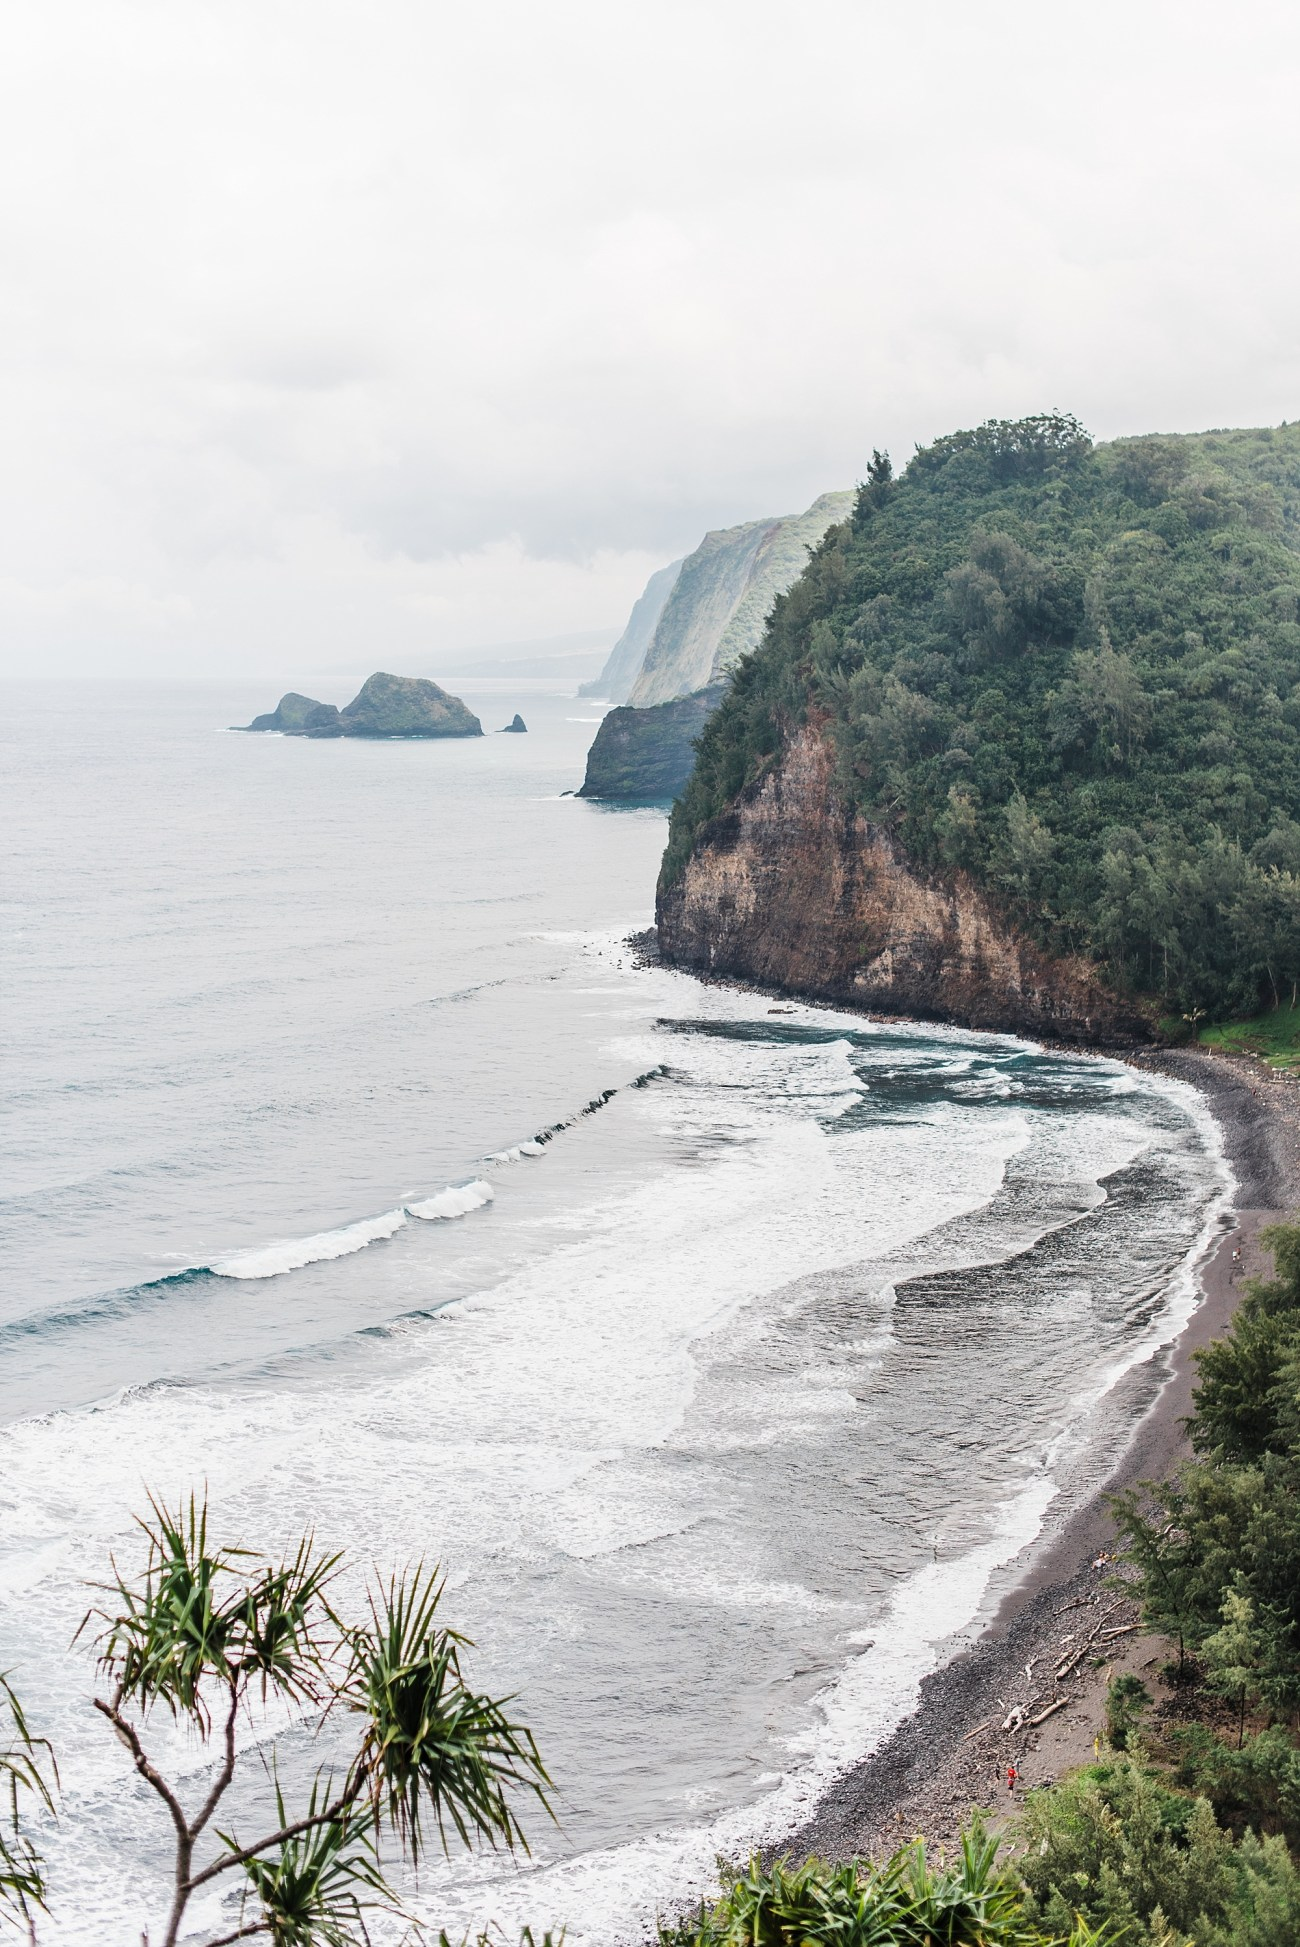 Photo of the Pololu Valley Beach taken from the trail by Laura Lango of Forthright Photo